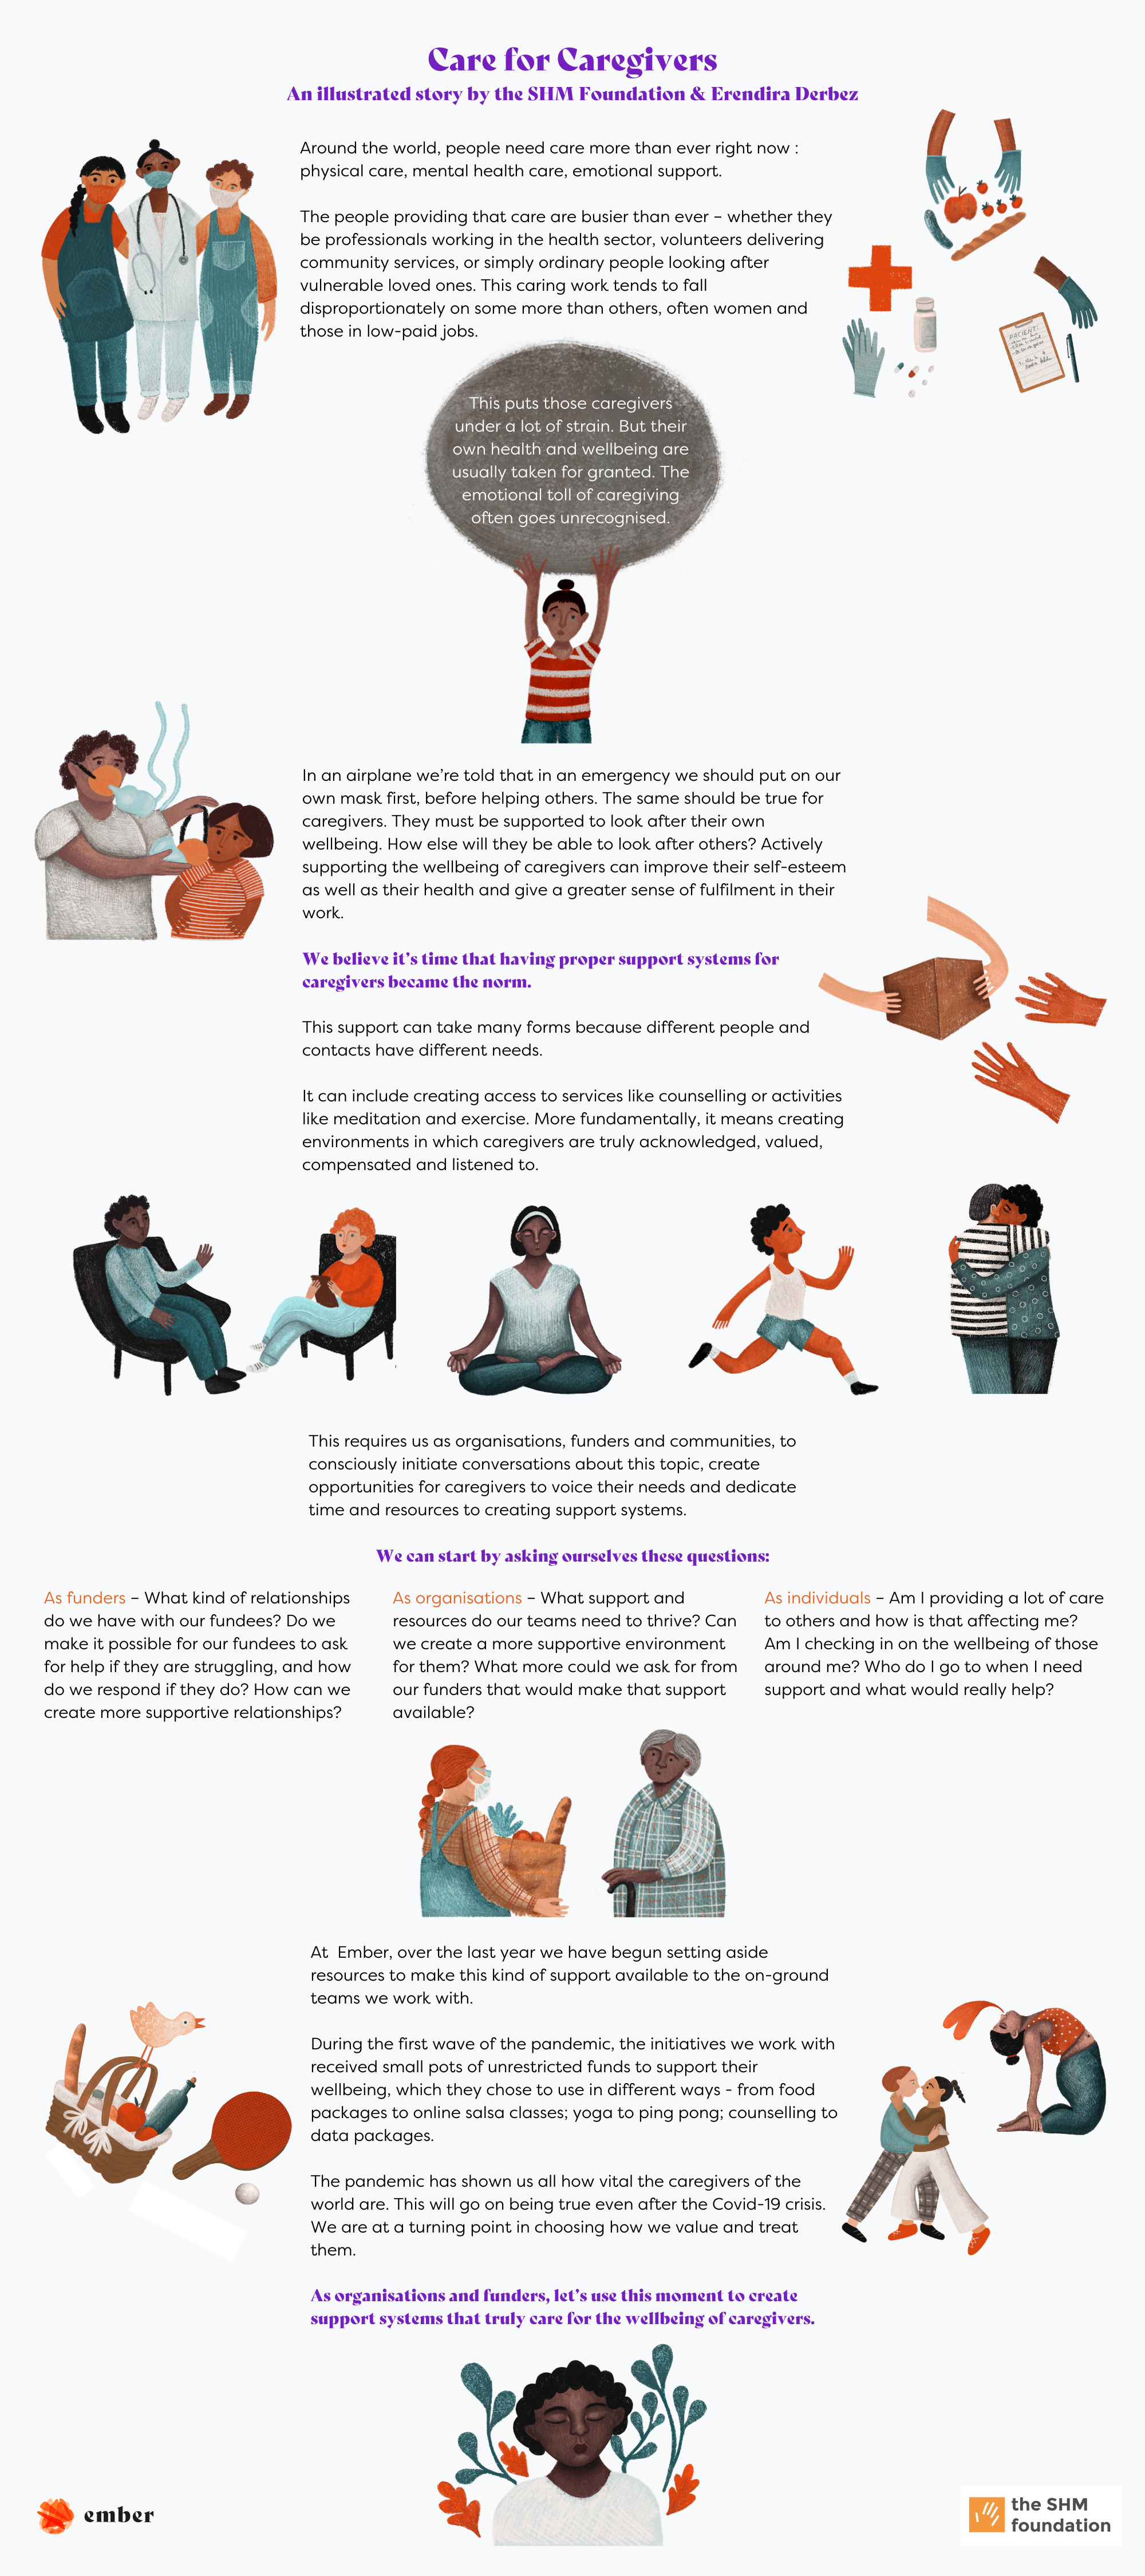 The 1st section shows different caregivers- health sector professionals, community service volunteers & family members. The 2nd section shows why caring for caregivers is important with an example- in an airplane, a person wears a mask first before helping others. The 3rd section shows ways in which Ember's partners used wellbeing funds- board games, counselling, food packs etc.